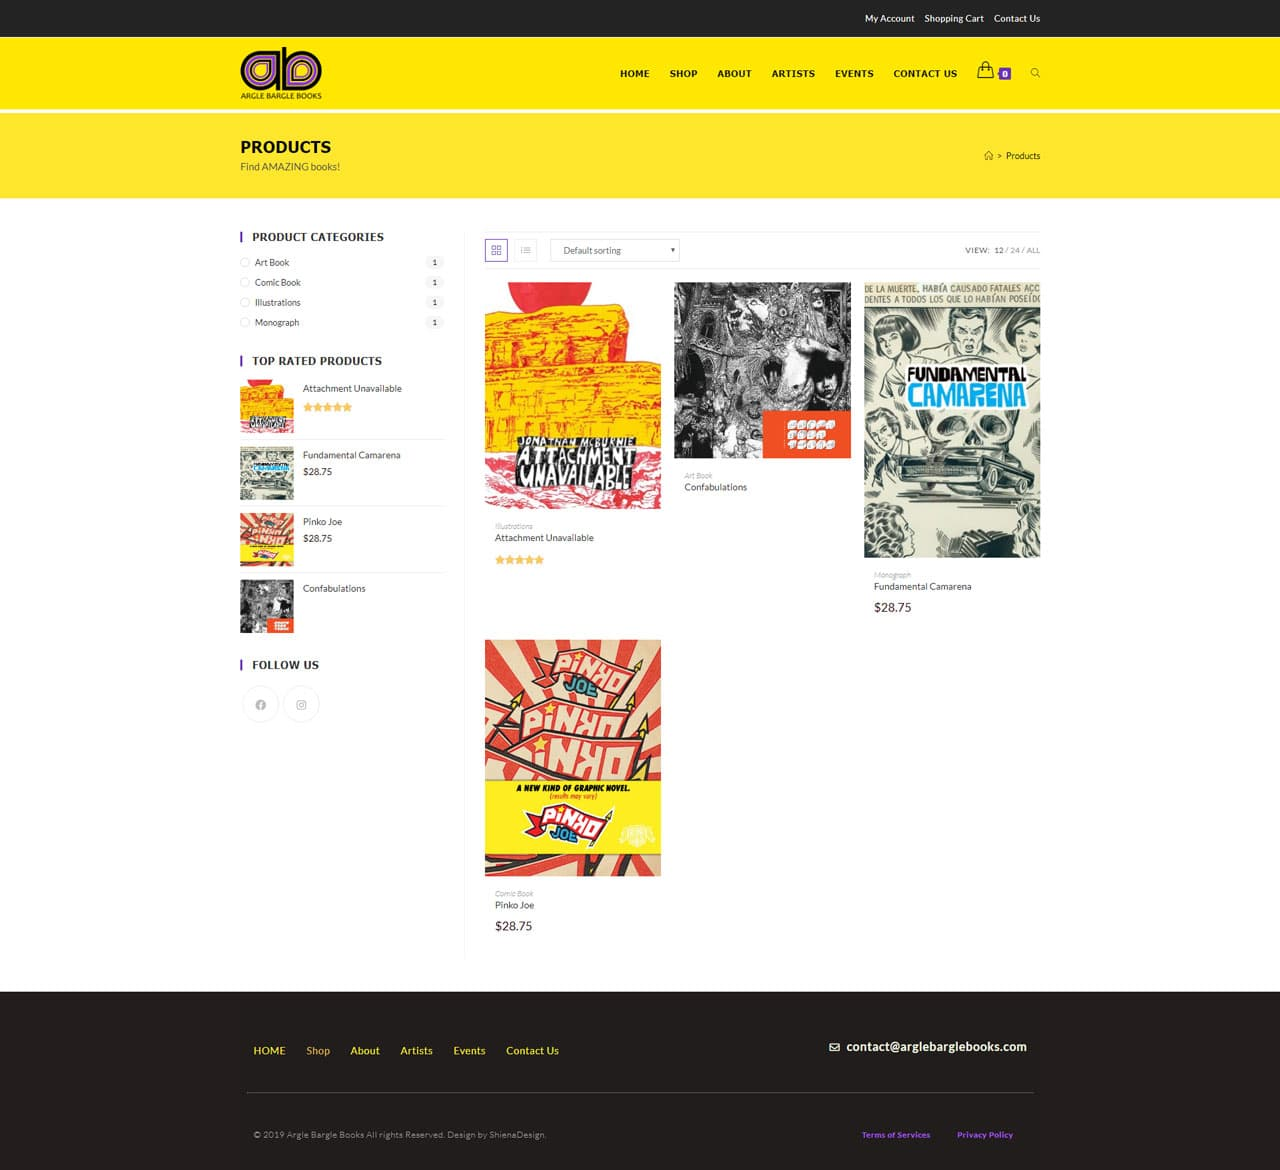 Arglebarglebooks.com's product selection page